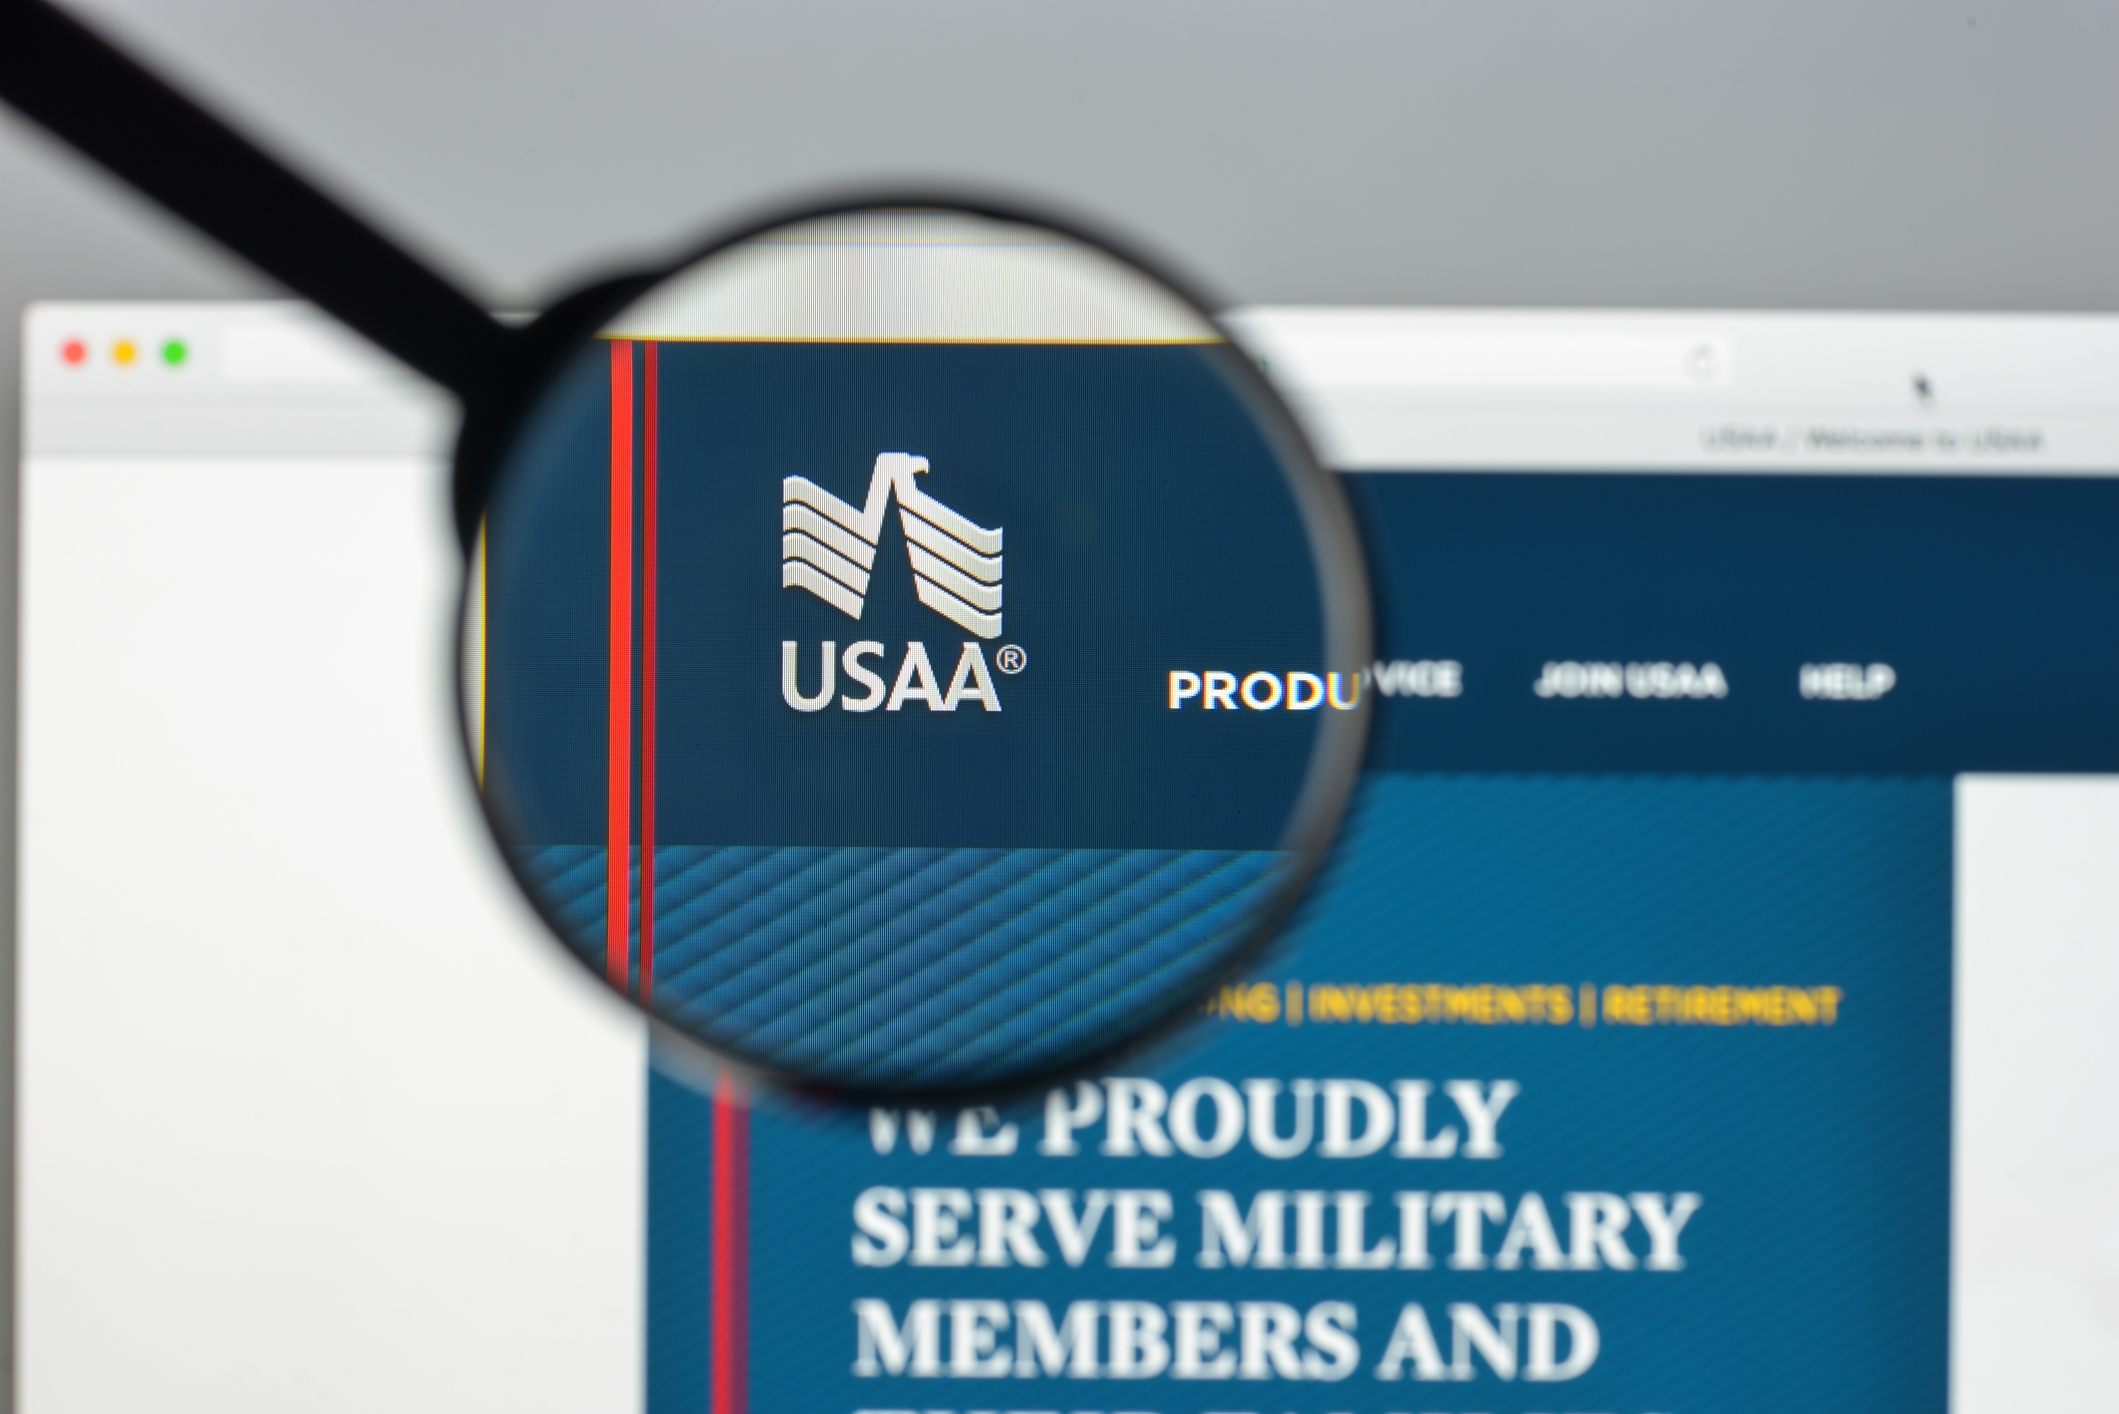 Usaa Contact Us >> 7 Things To Know About Usaa Auto Insurance Clark Howard